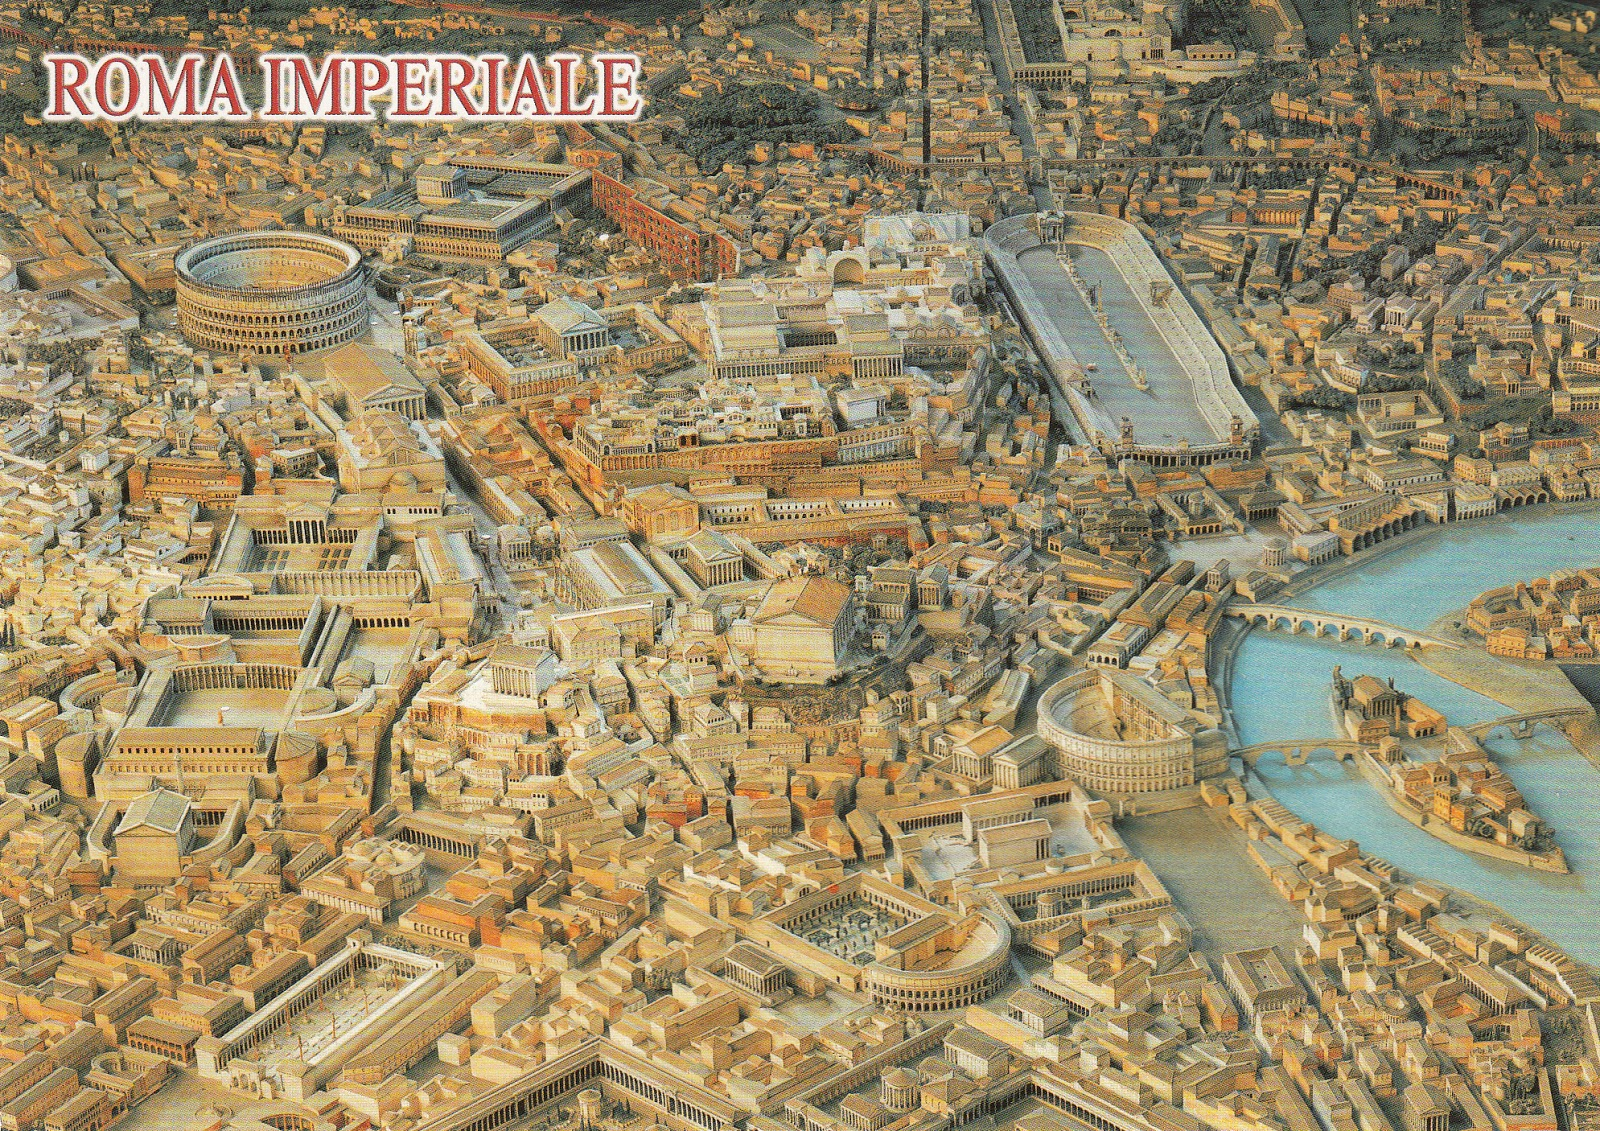 10 Innovations That Built Ancient Rome